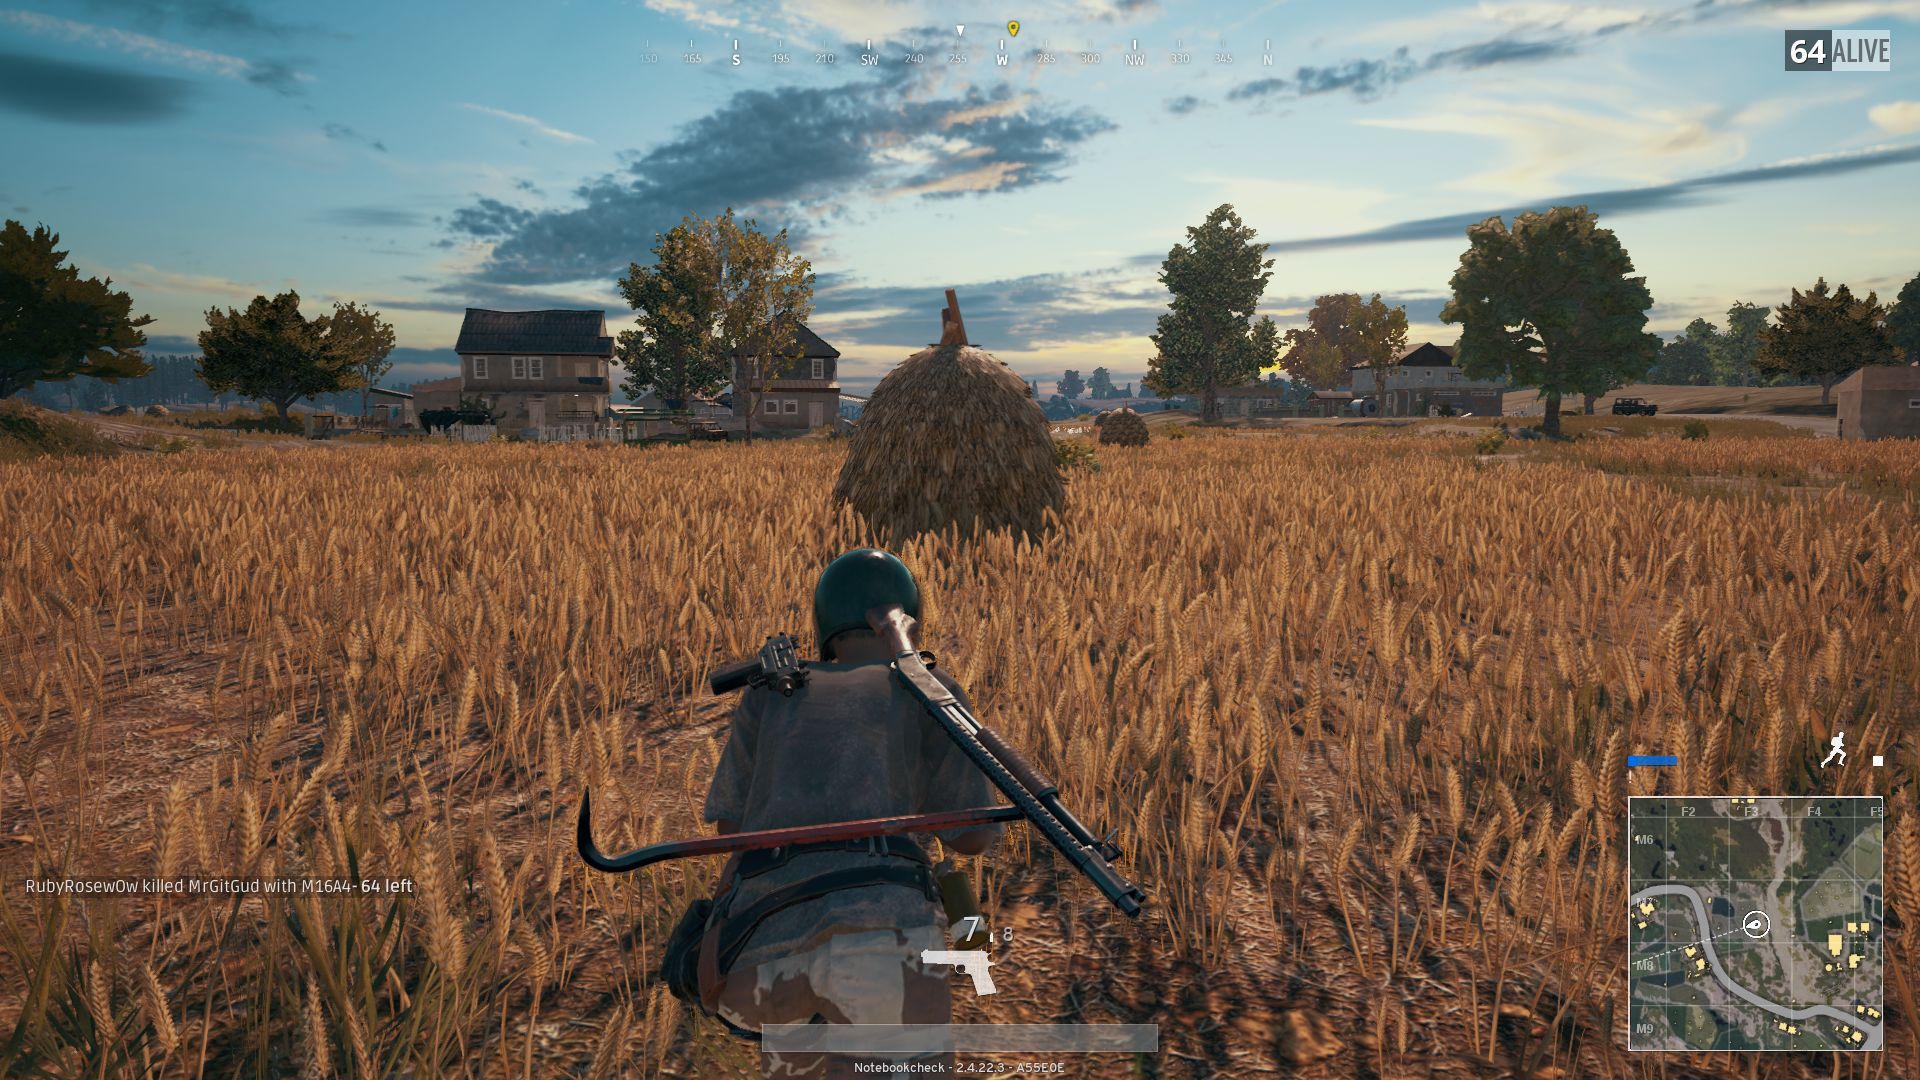 Pubg Hd Wallpaper 4k For Laptop: Playerunknown's Battlegrounds